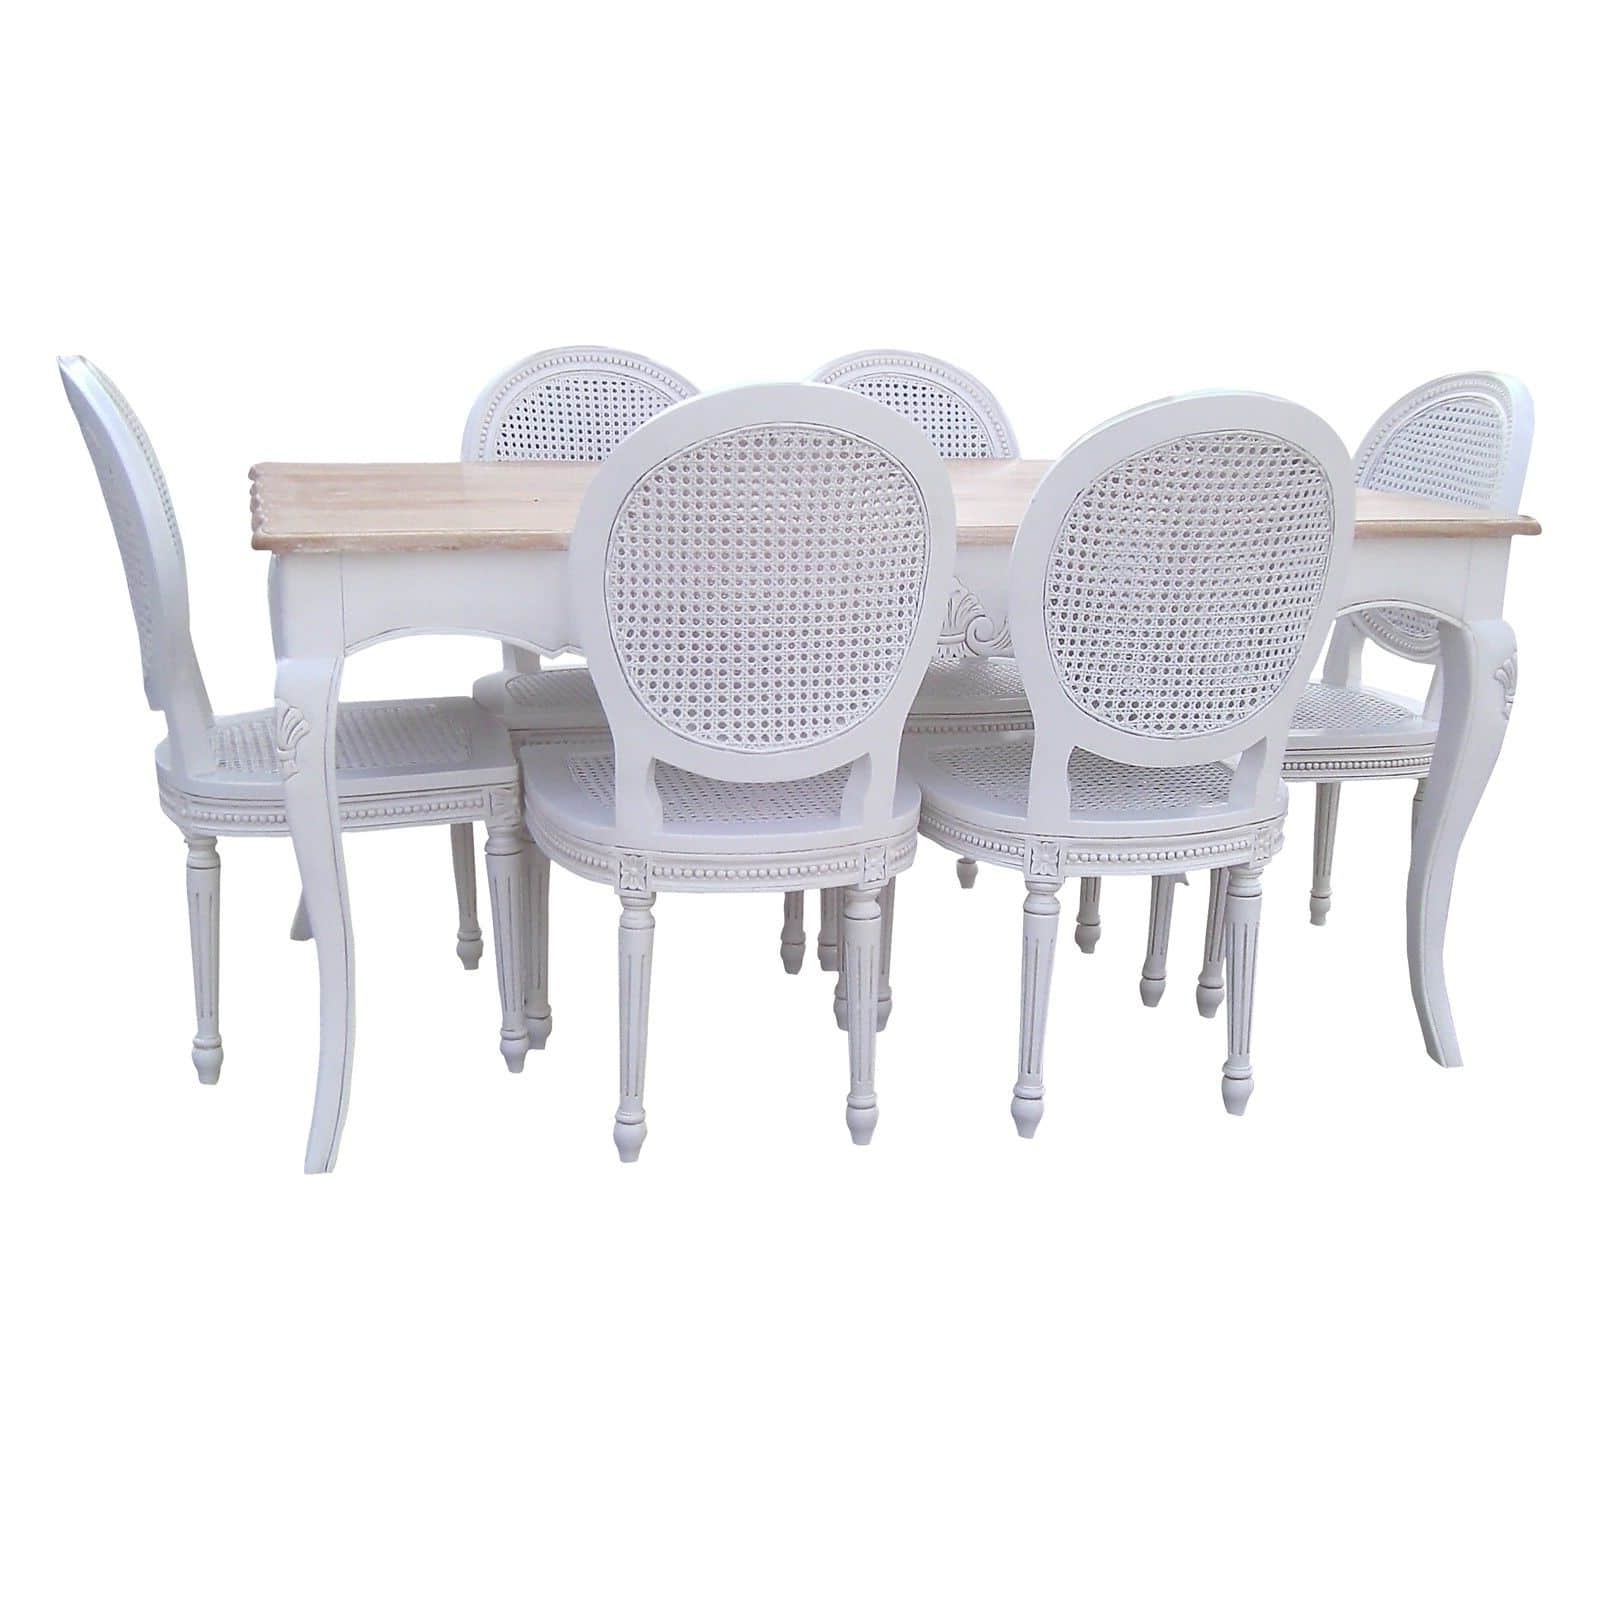 French Chateau White Mahogany Dining Table Set With 6 Chairs Inside Recent White Dining Tables And 6 Chairs (View 20 of 25)